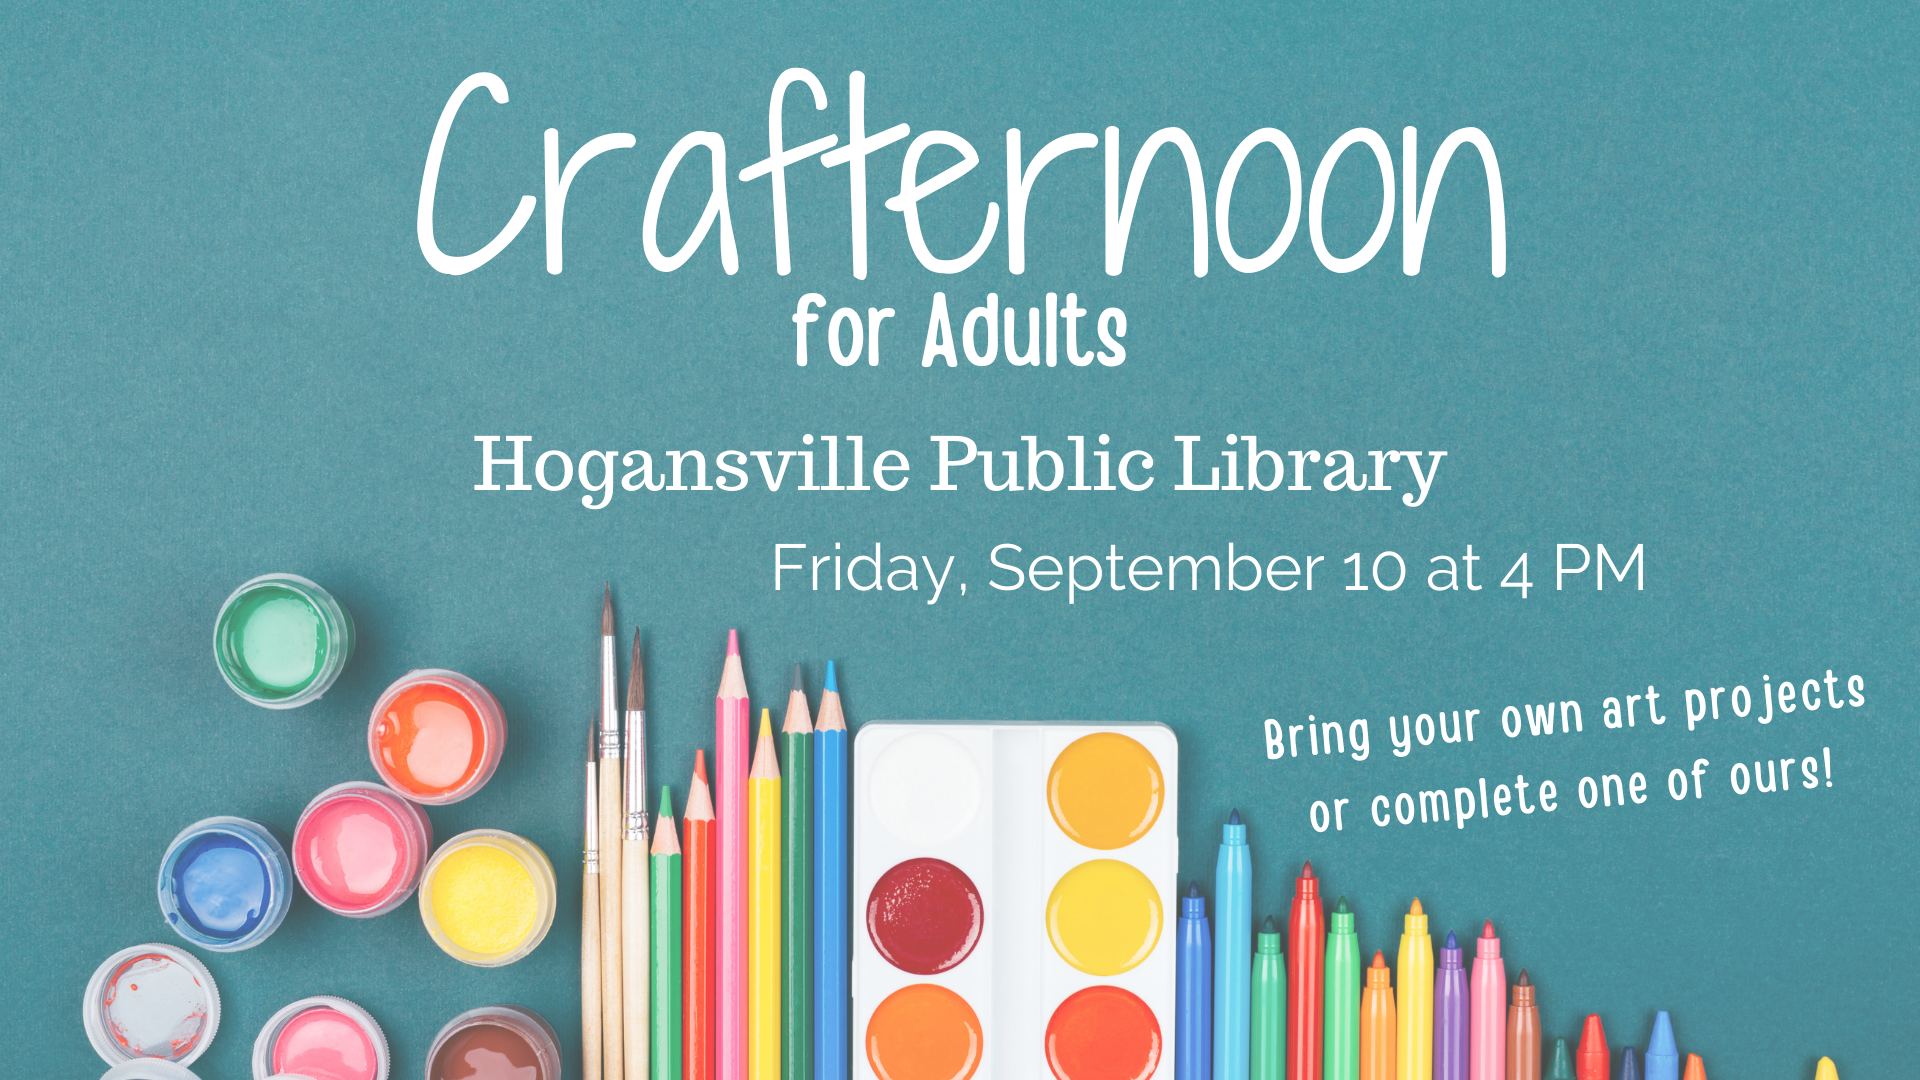 Adults, stop by the Hogansville Library on Friday, September 10 at 4 PM and get your craft on with other local crafters! Participants may bring their personal supplies (drawing, painting, woodwork, etc.), or may use provided supplies. Open to all young community members - no library card/registration required.